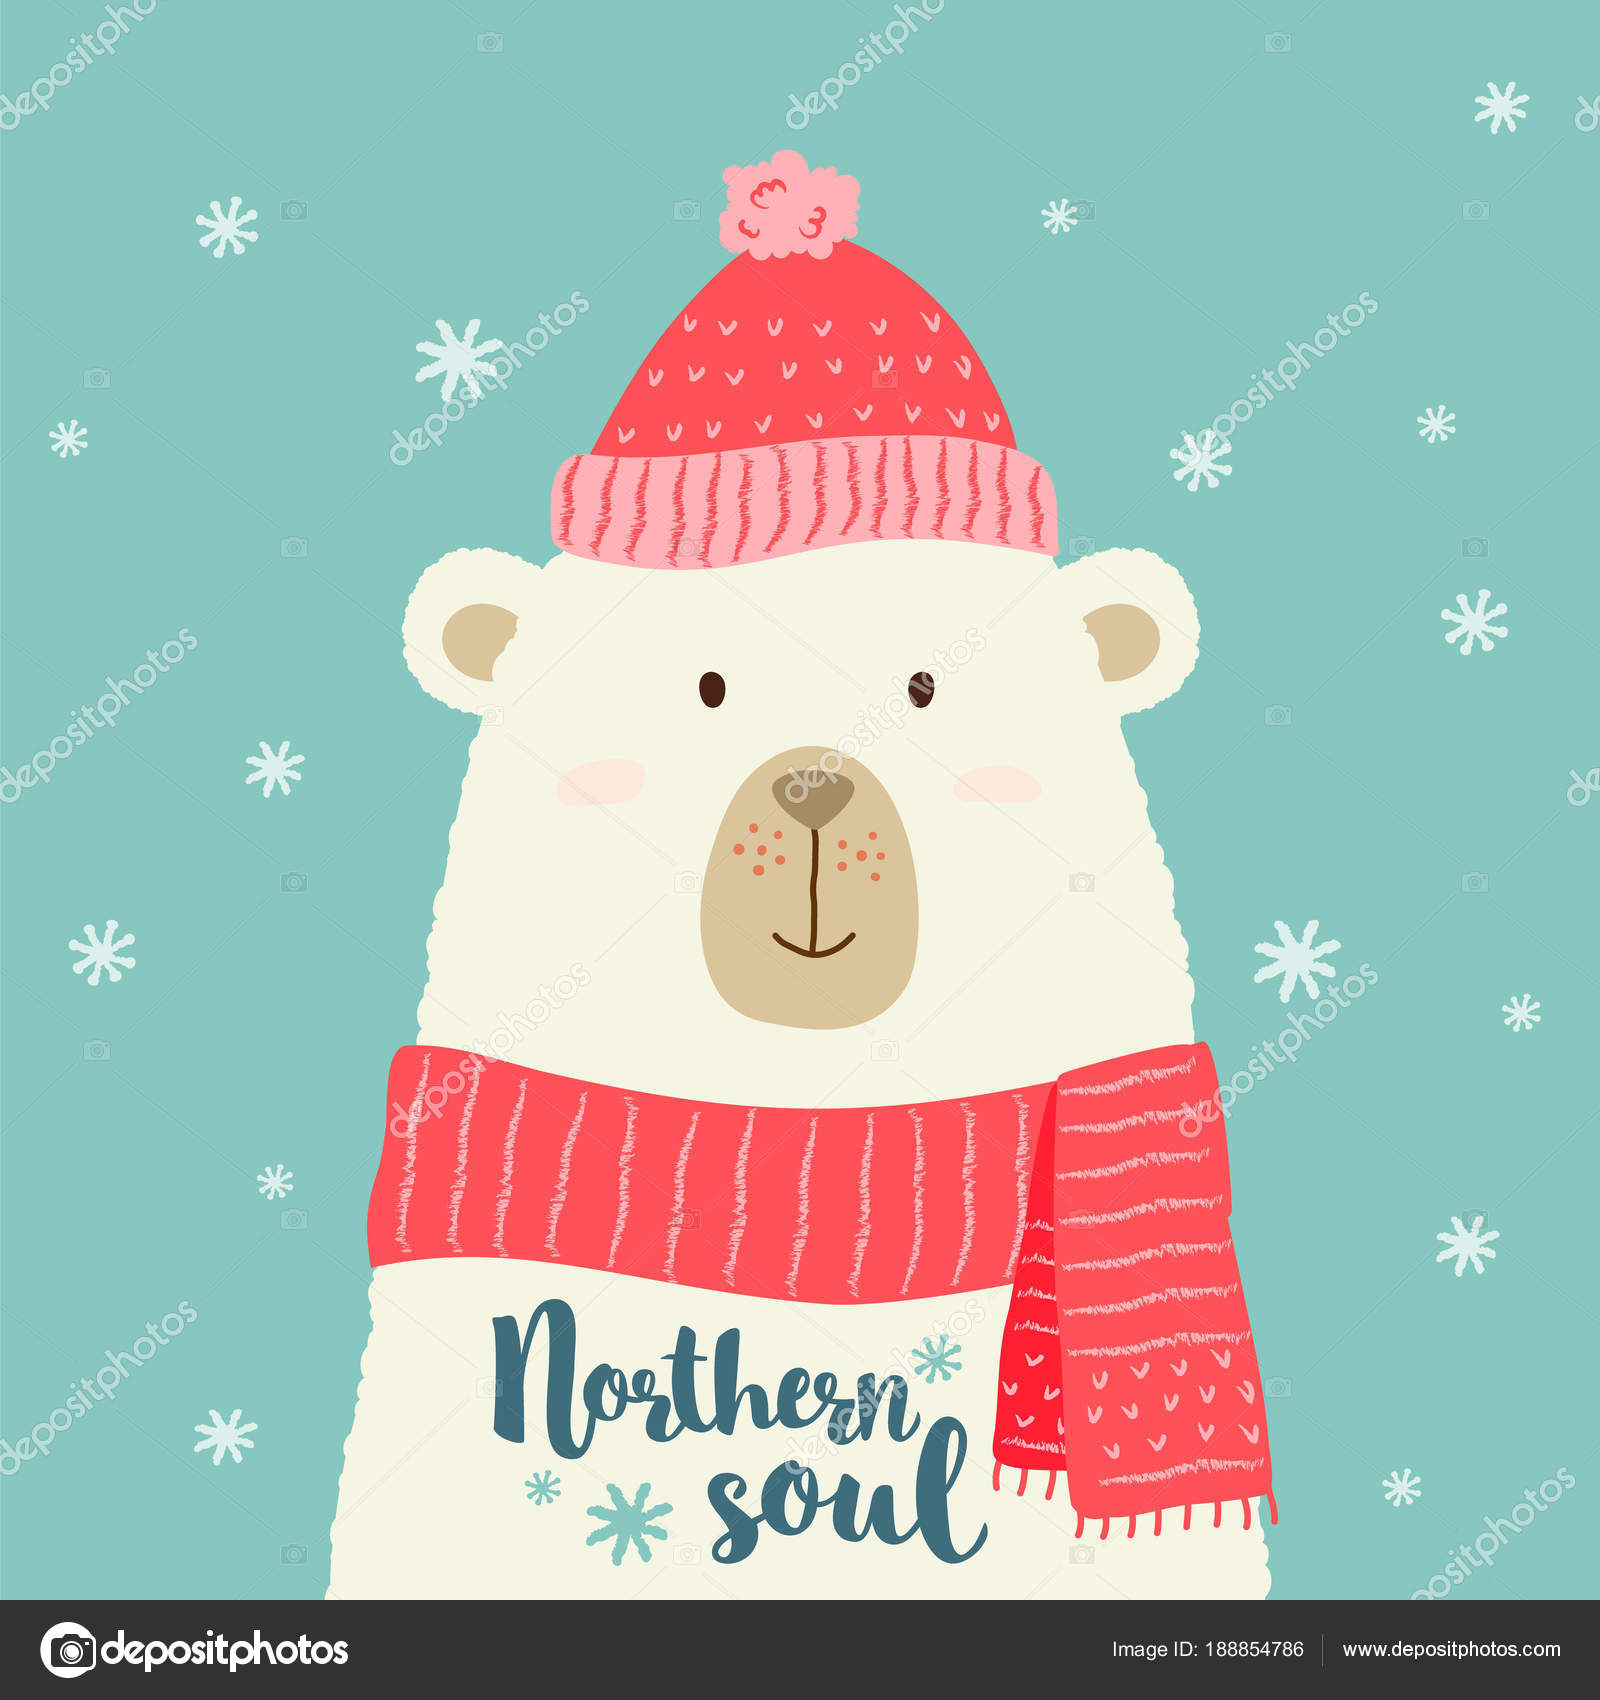 Vector Illustration Of Cute Cartoon Bear In Warm Hat And Scarf With